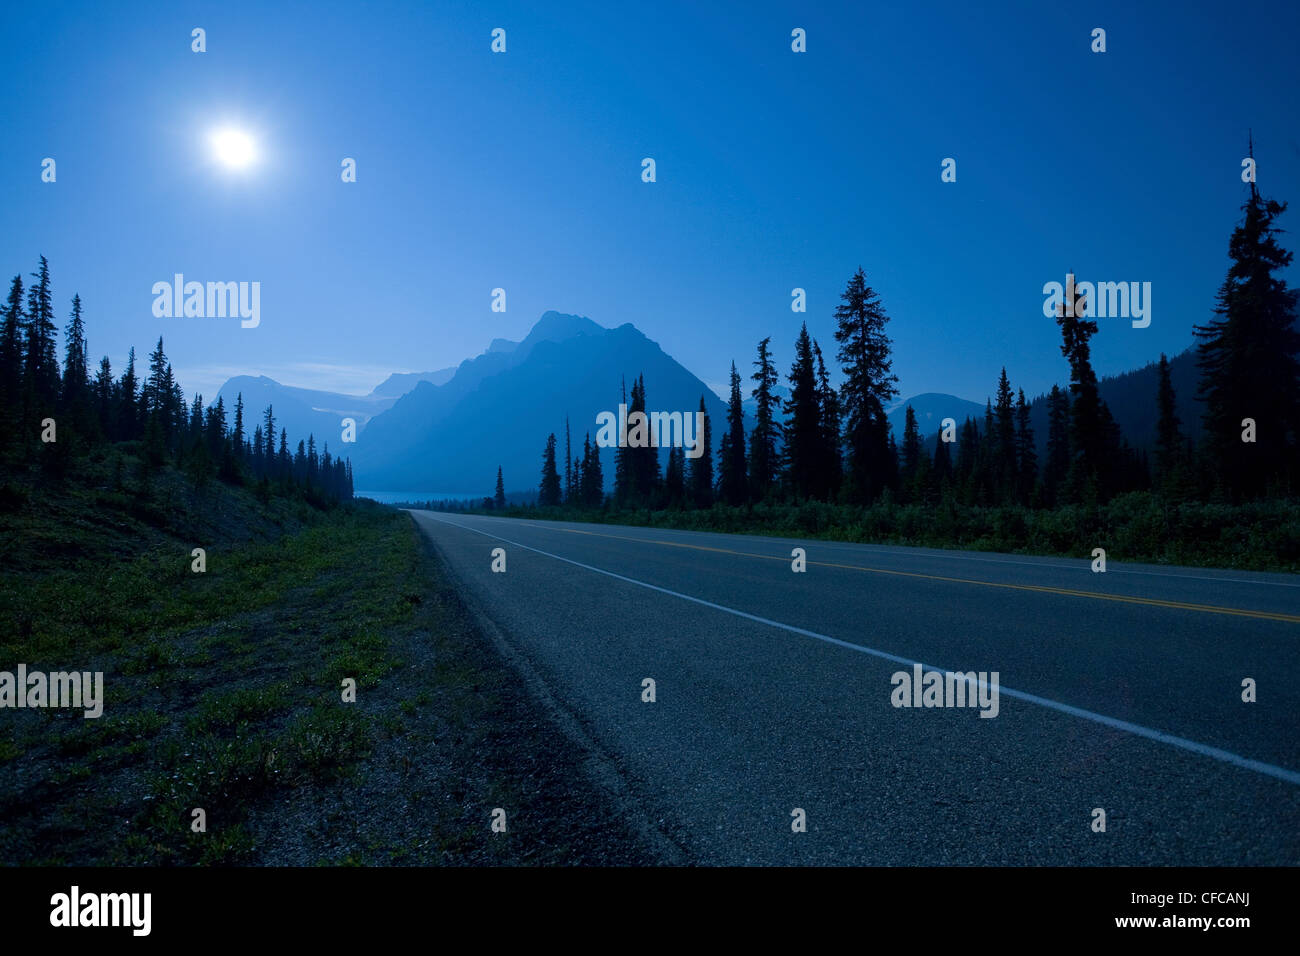 full moon lights Icefields Parkway leads Crowfoot - Stock Image